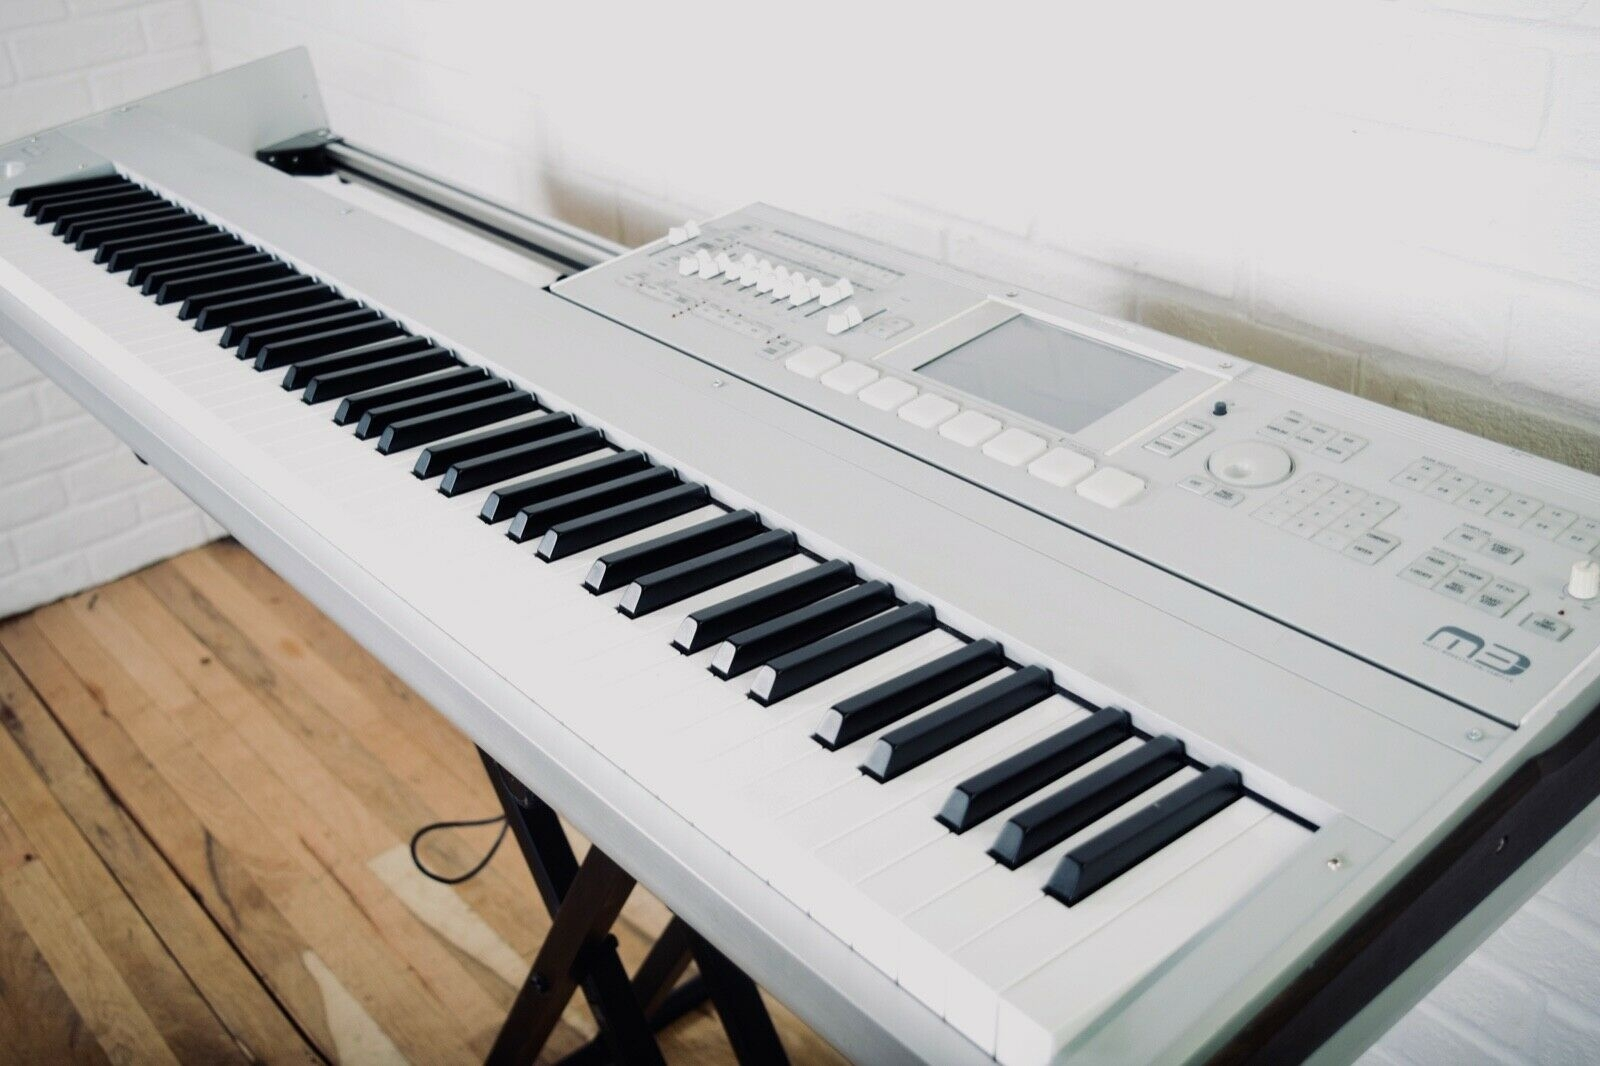 Korg Oasys 88 key piano keyboard with accessories - New